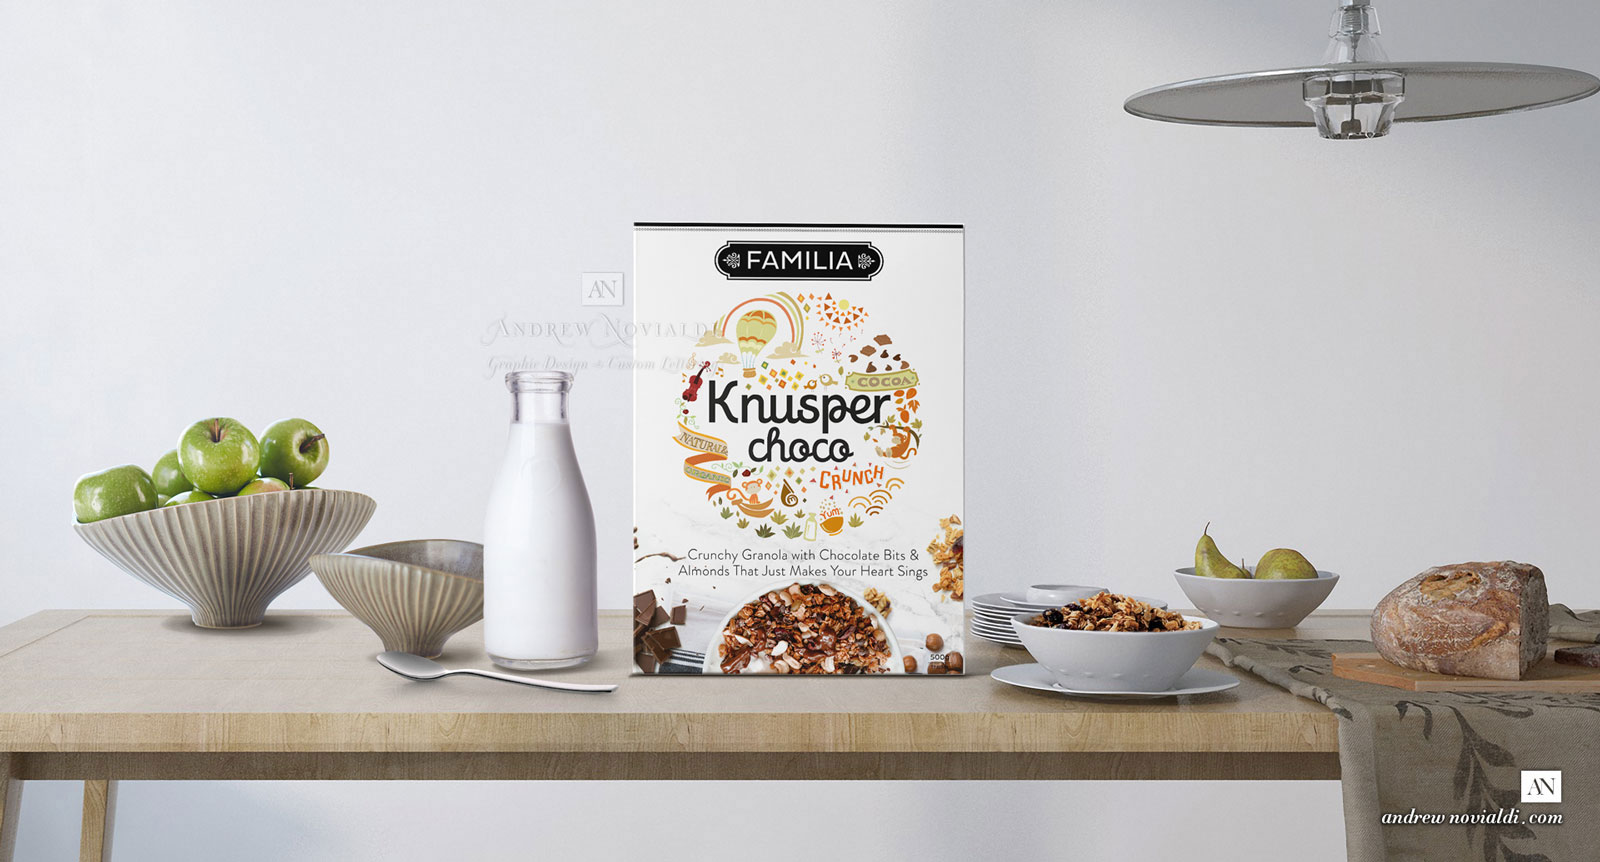 Knusper Granola Muesli Natural and Healthy All Natural Breakfast